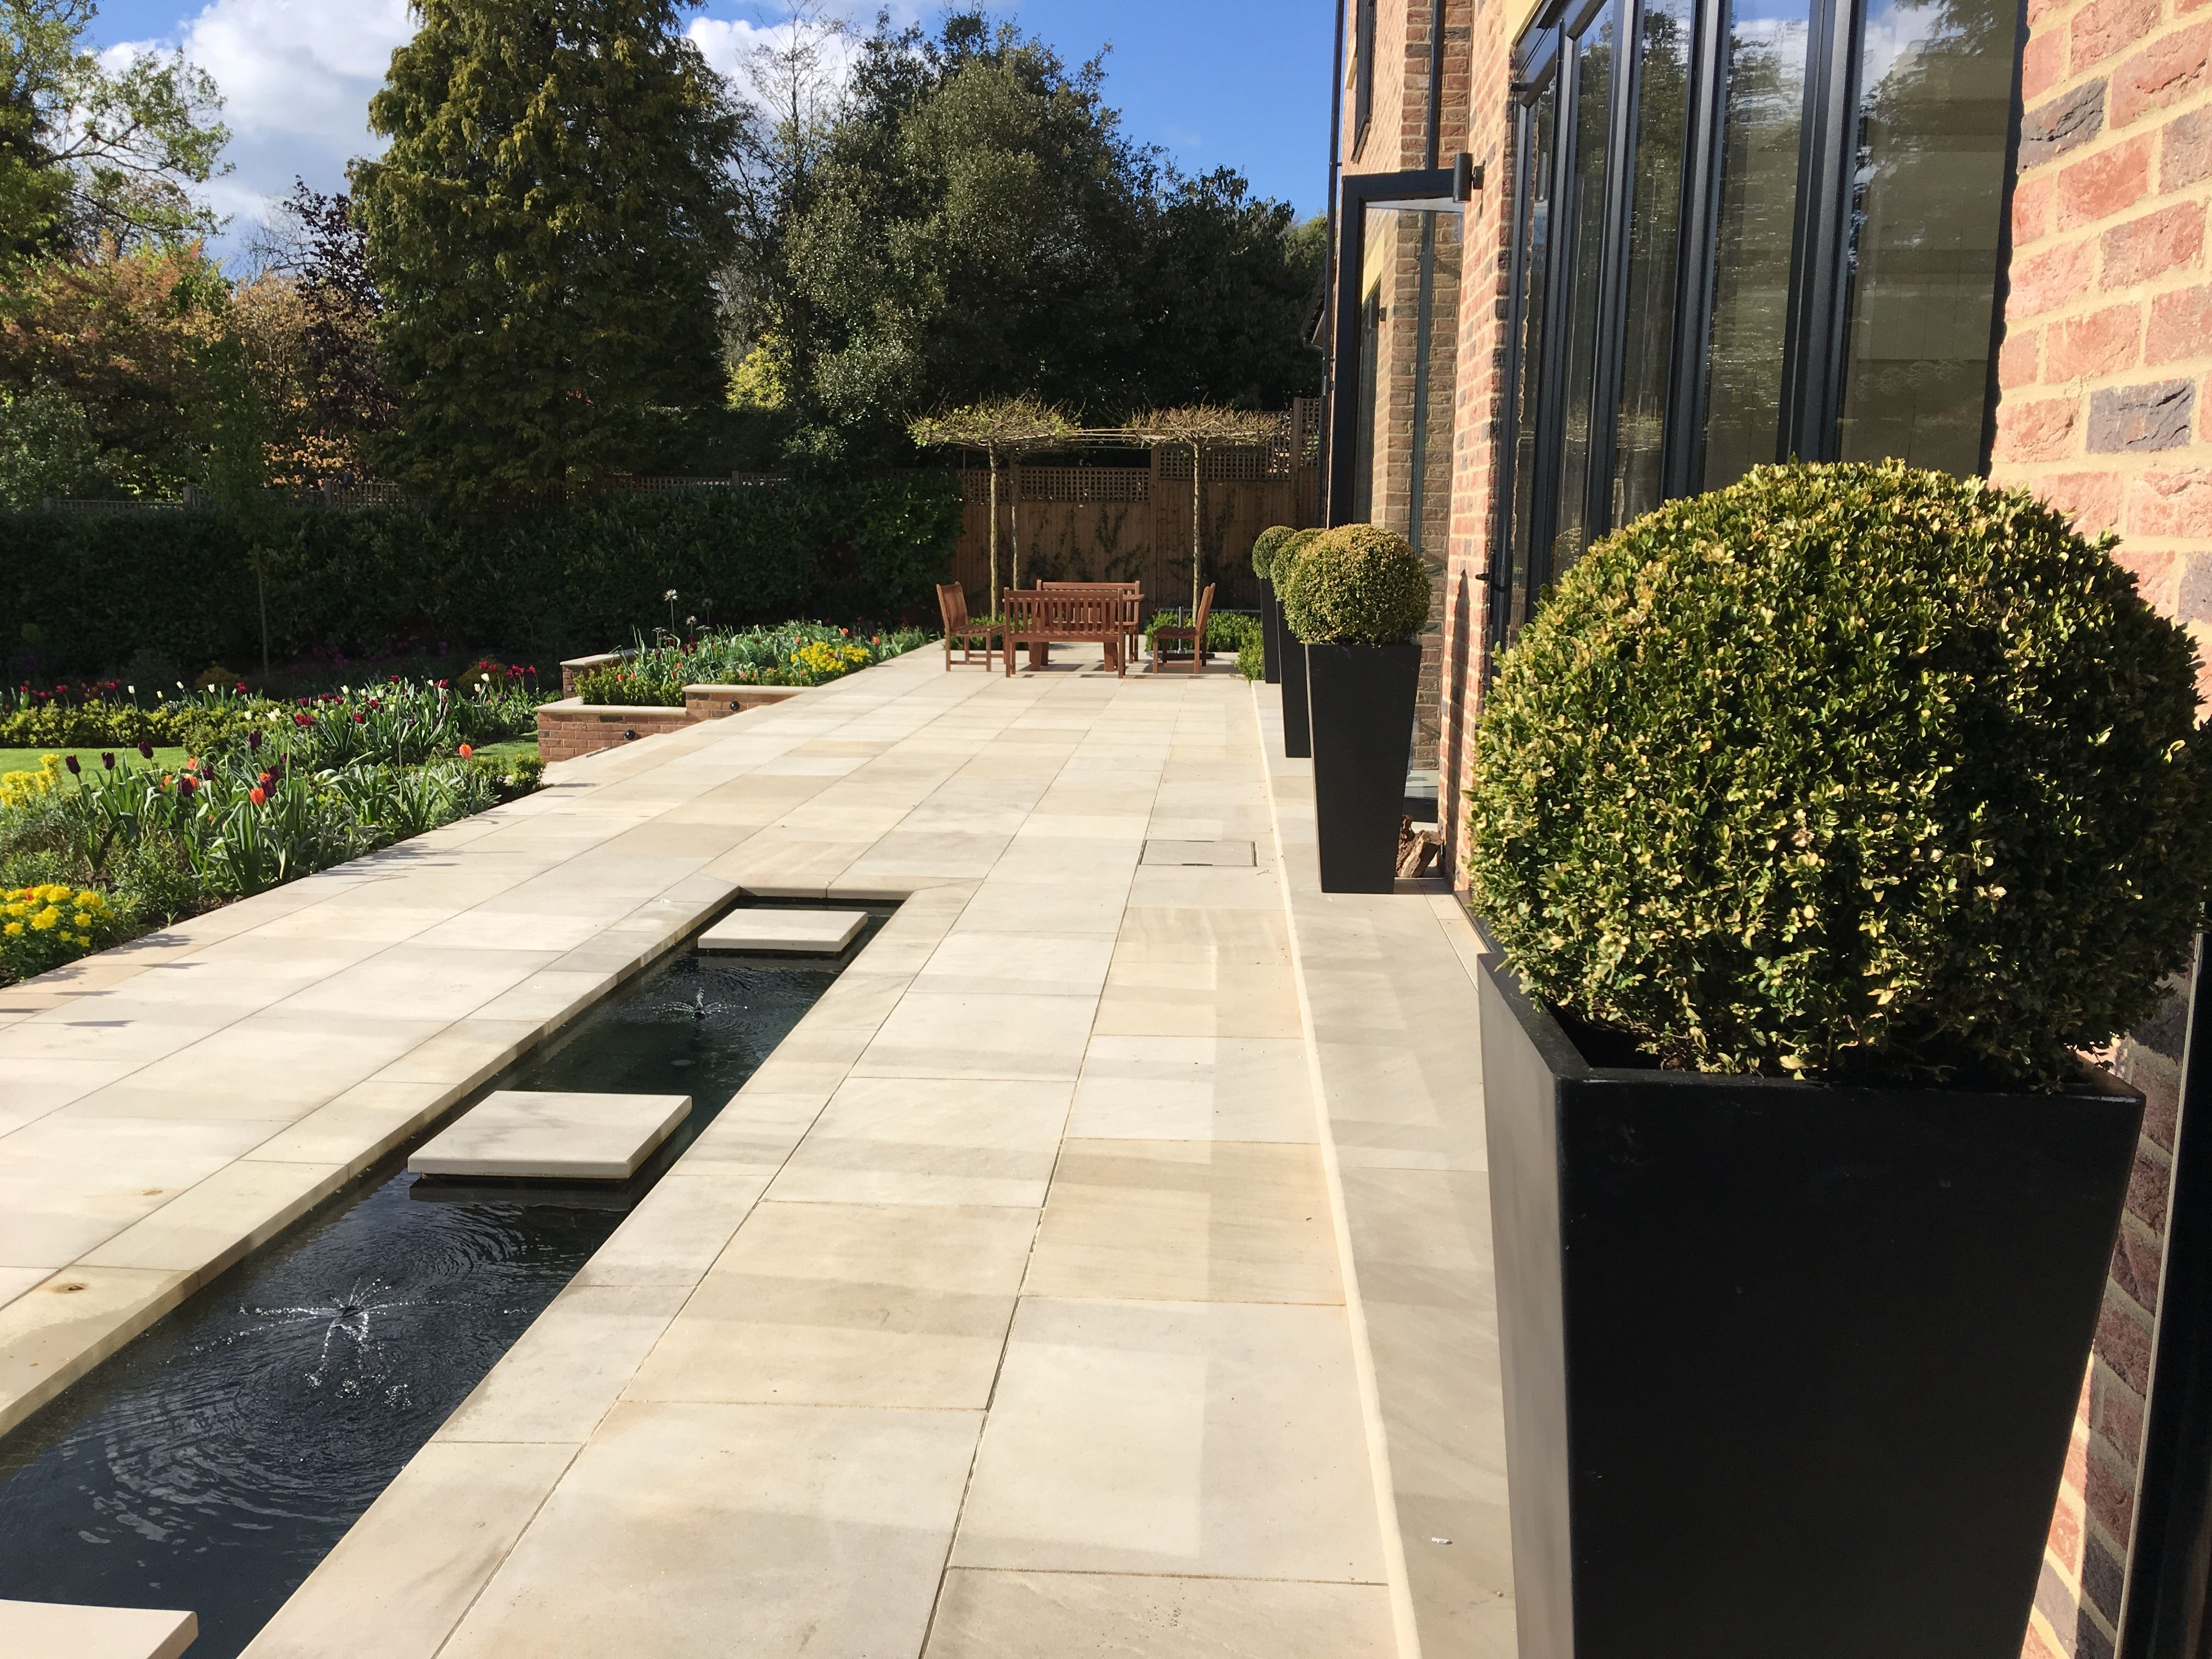 A Long Water Rill Water Feature Intersects An Expansive Sawn Sandstone  Terrace In One Of. Water FeatureDesign ProjectsTerracesGarden Design